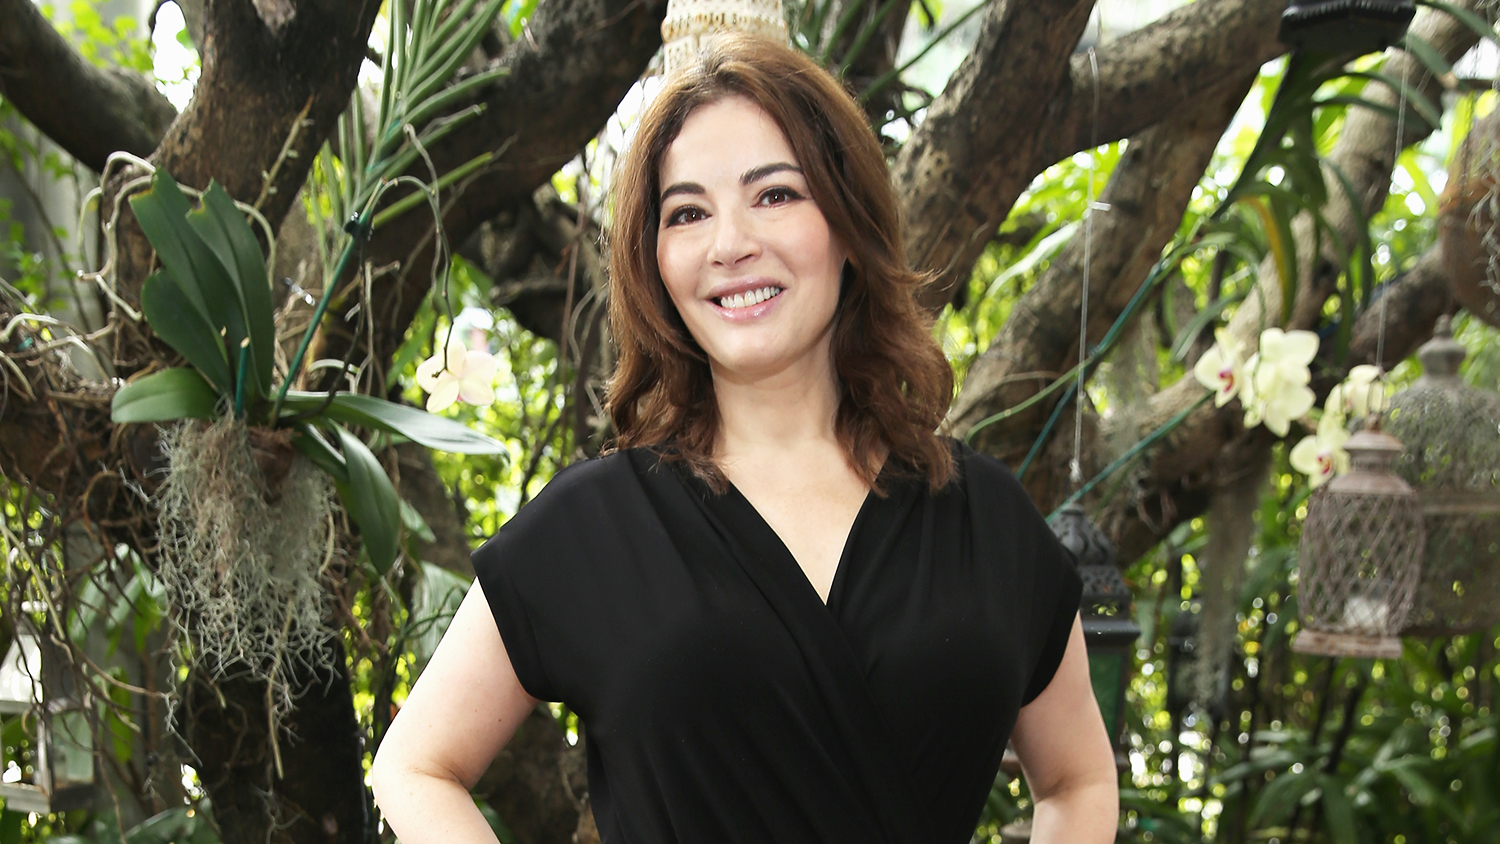 Nigella Lawson's Carbonara Recipe Leaves Twitter in a ...